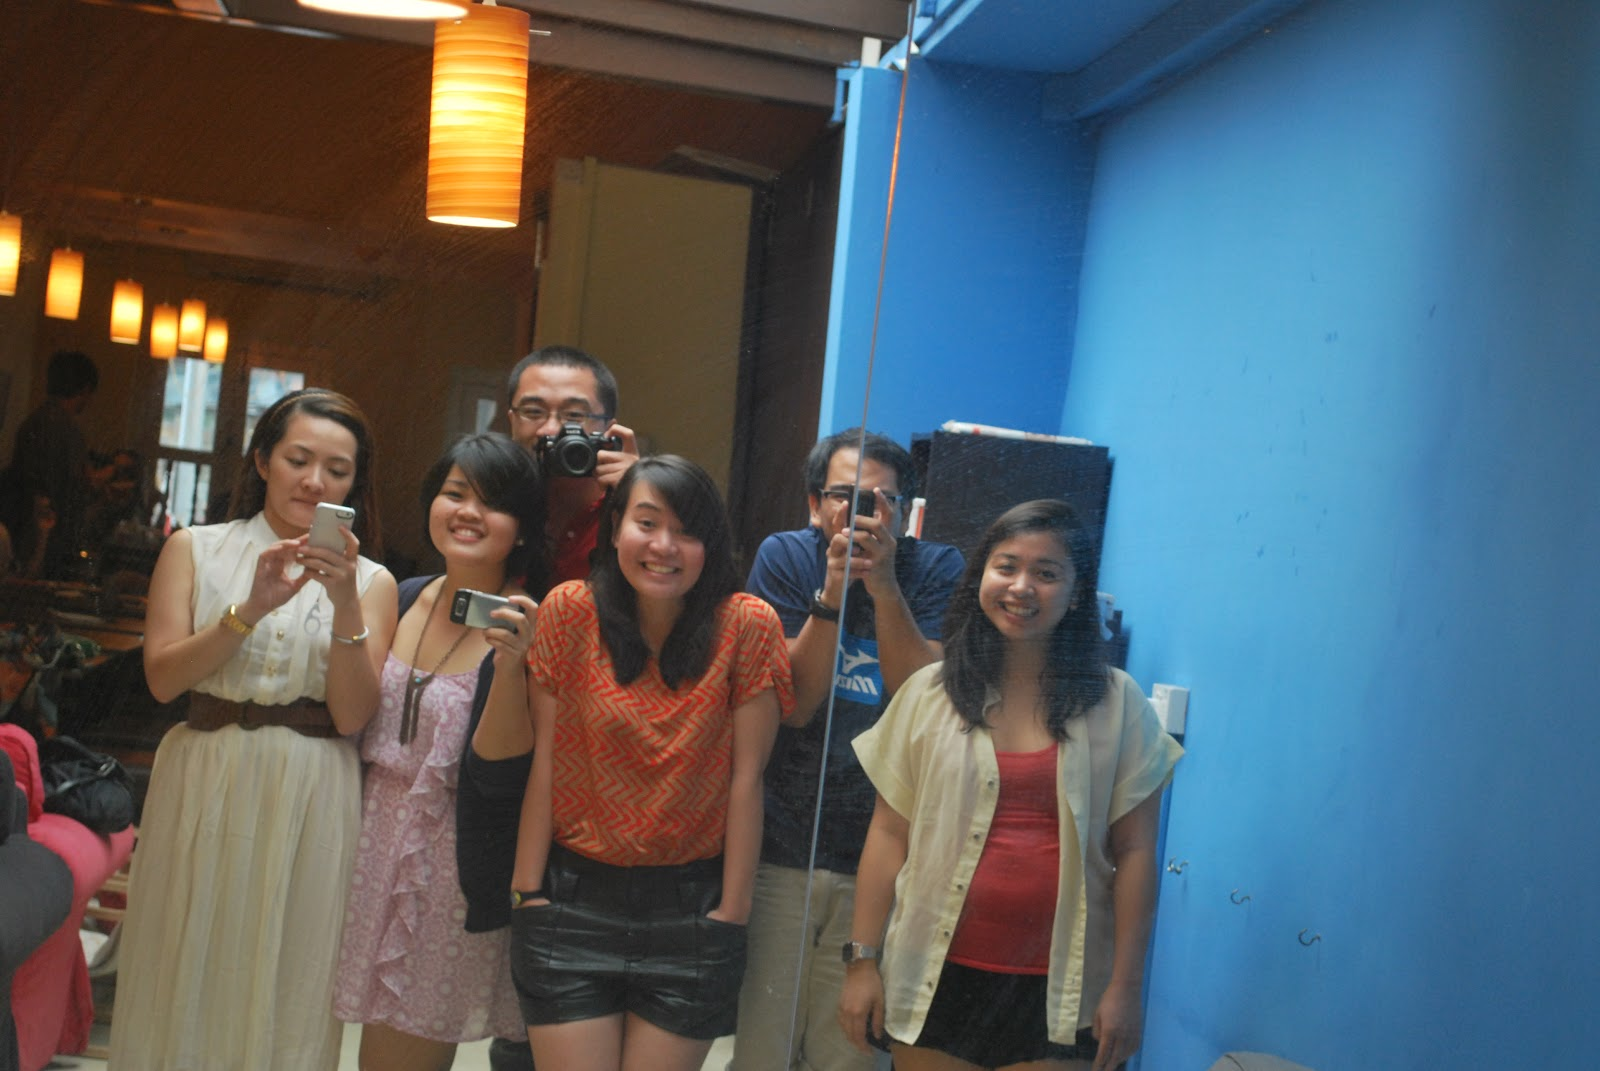 The closest I'll be to camwhoring: with other people, in a mirror. From left: Nadia, Mae, me, Marielle, Kevin (Marielle's cousin who also works in Singapore) and Chamy.